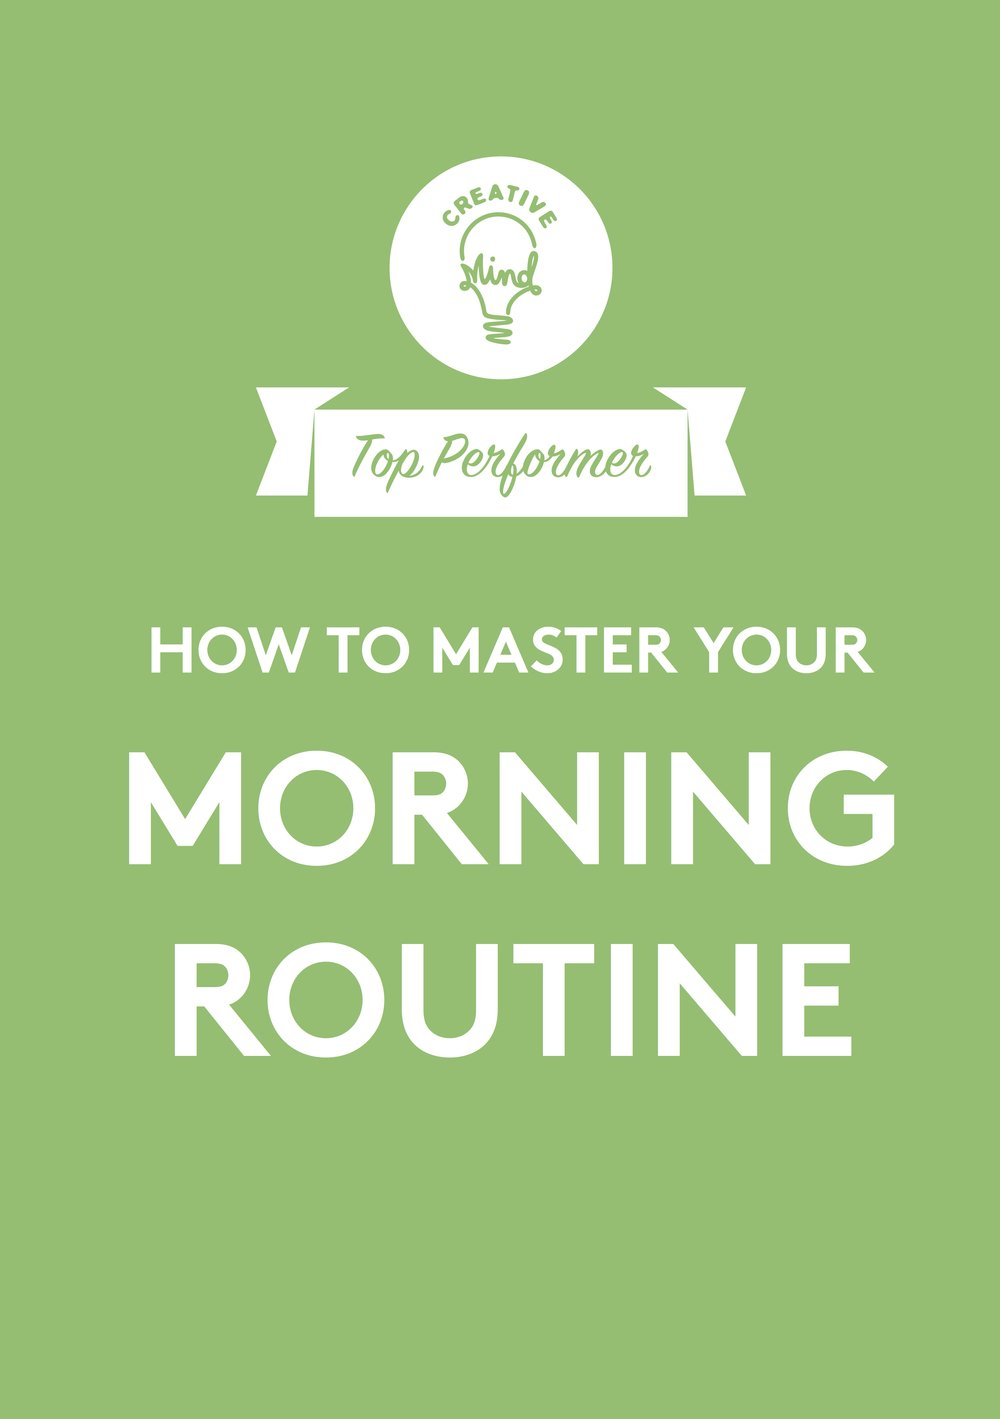 FREE DOWNLOAD: How to master your morning routine - Define your winning morning routine Gain inspiration from Top Performers Master your routine with our step-by-step guide